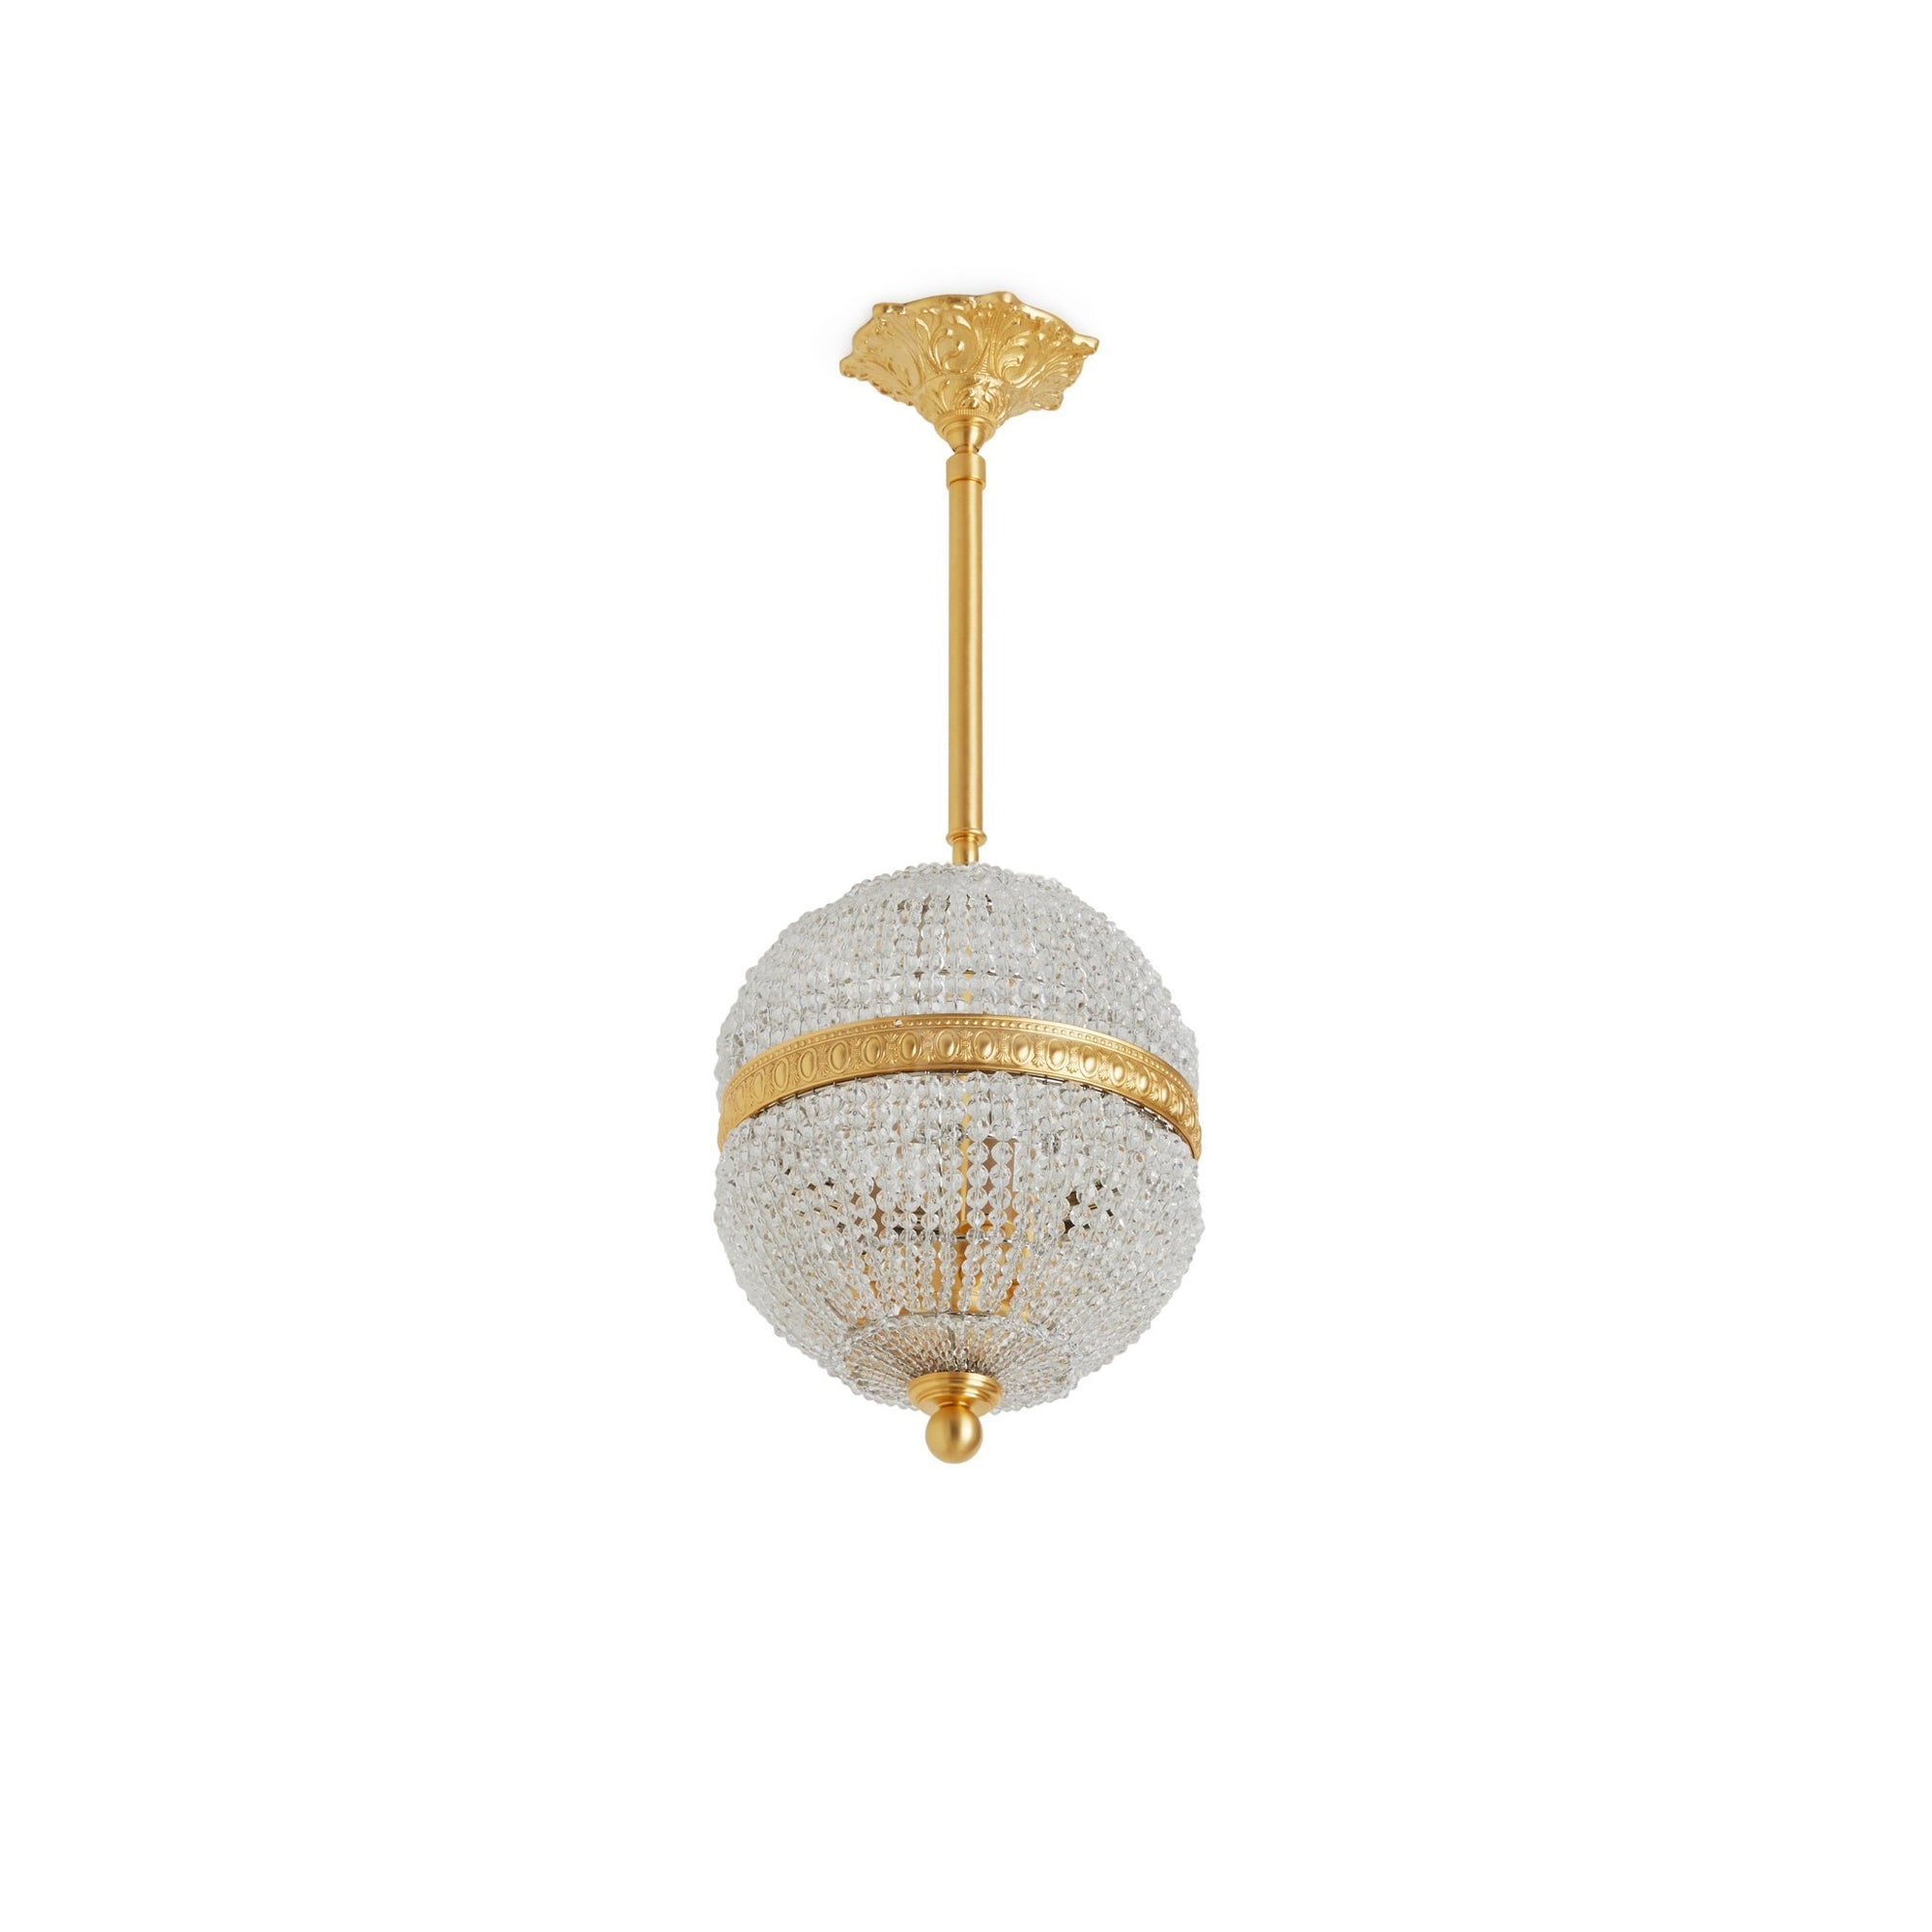 7108-PNDT-GP Sherle Wagner International Globe Crystal Beaded Pendant Light 8 inches in Gold plate metal finish